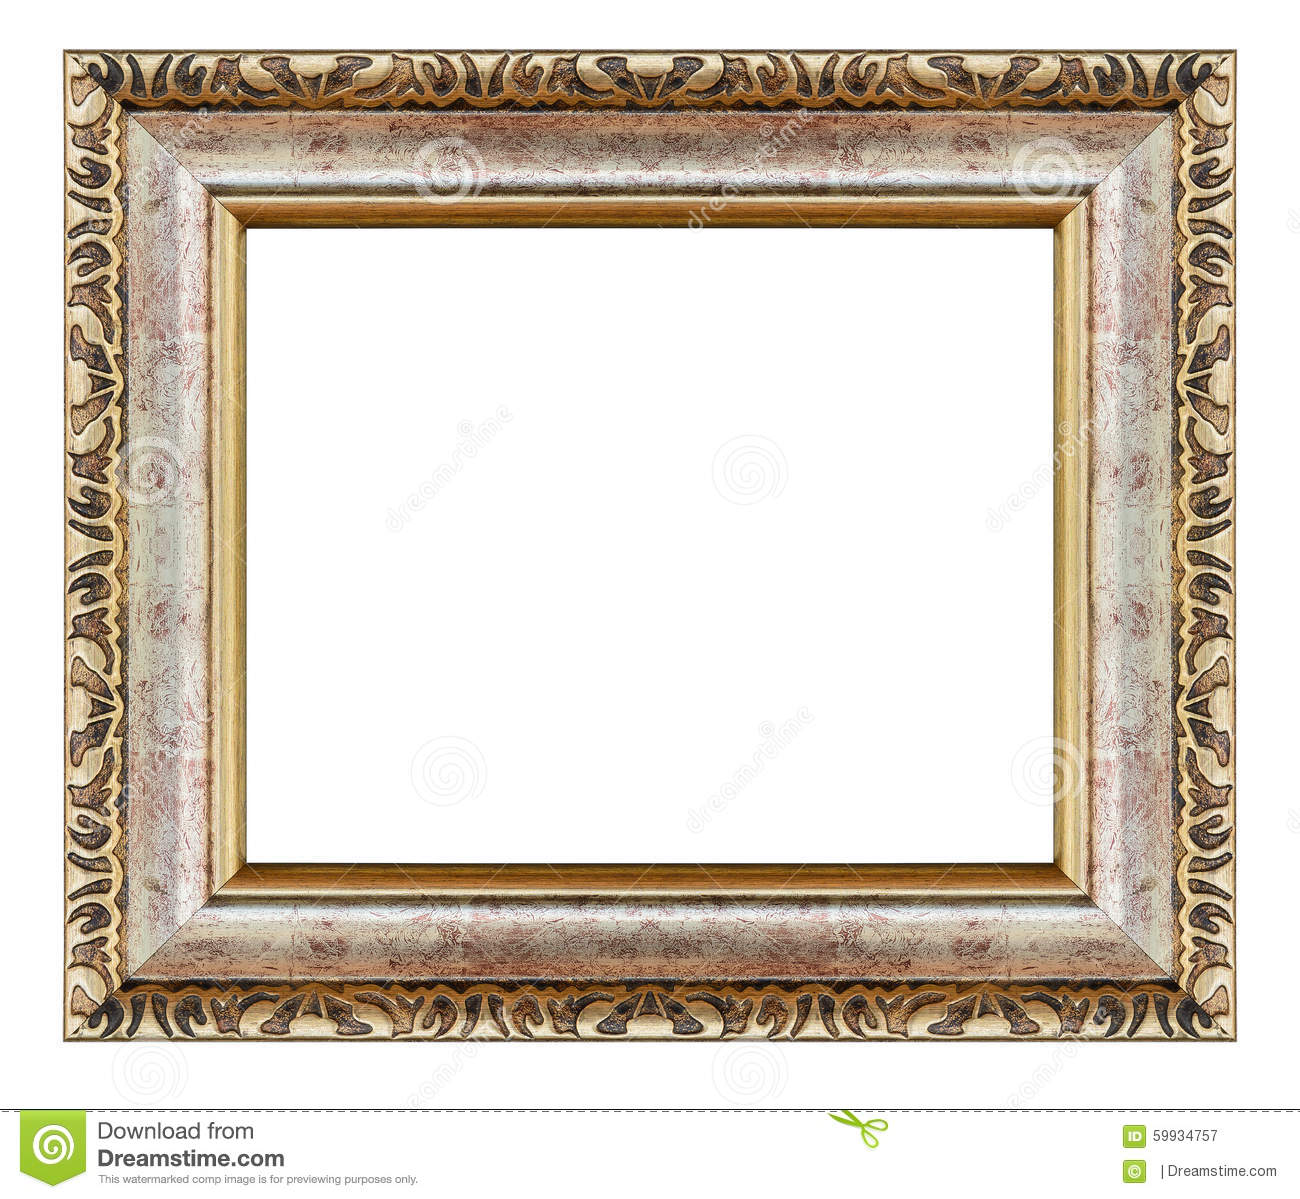 Decorative Wood Framing : Old antique gold frame isolated decorative carved wood